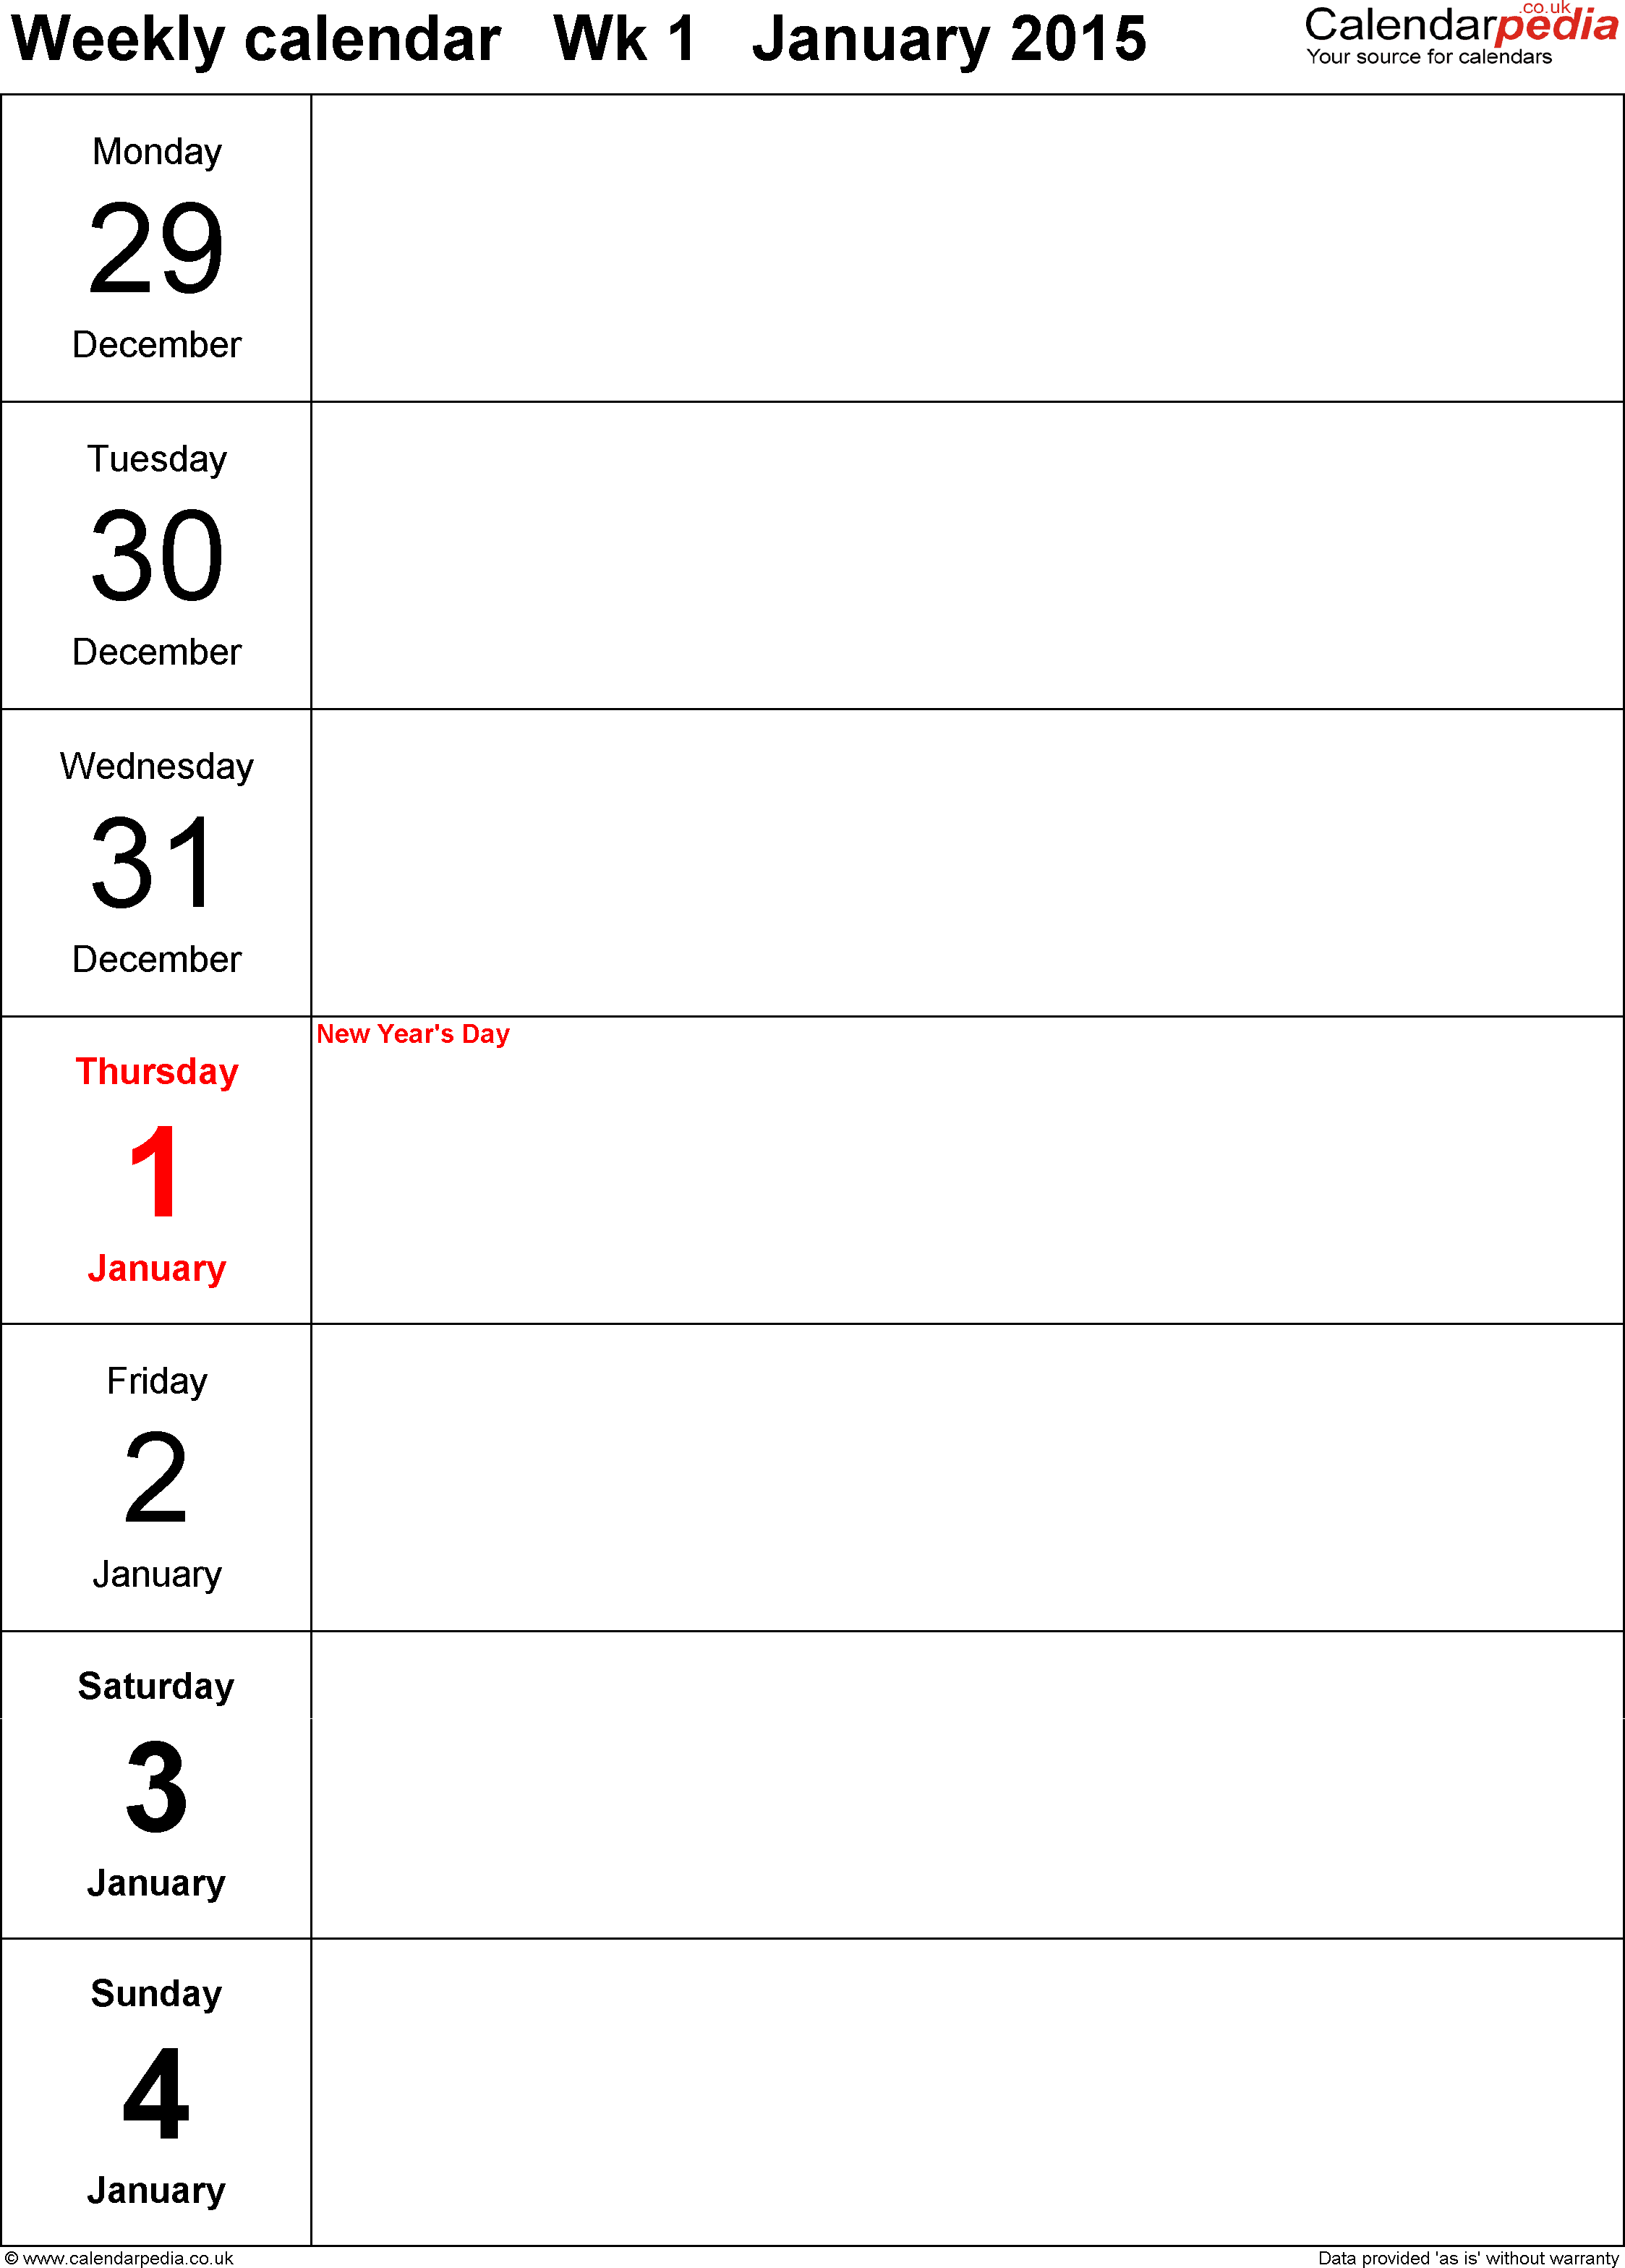 Weekly Planner with Time Slots Template 1275 · 1650